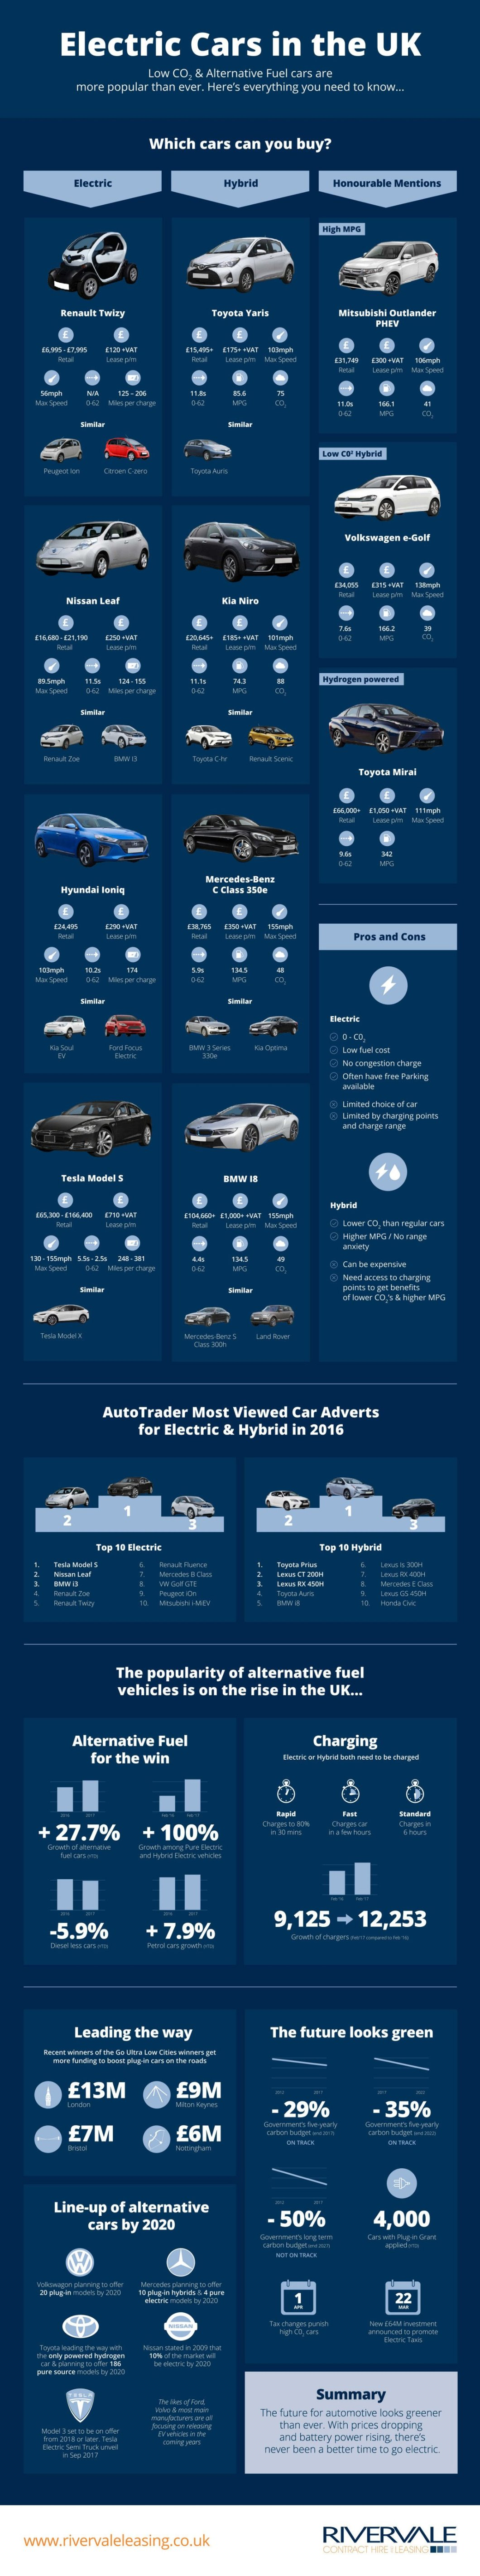 Electric Cars Are Here To Rescue The Environment - Infographic